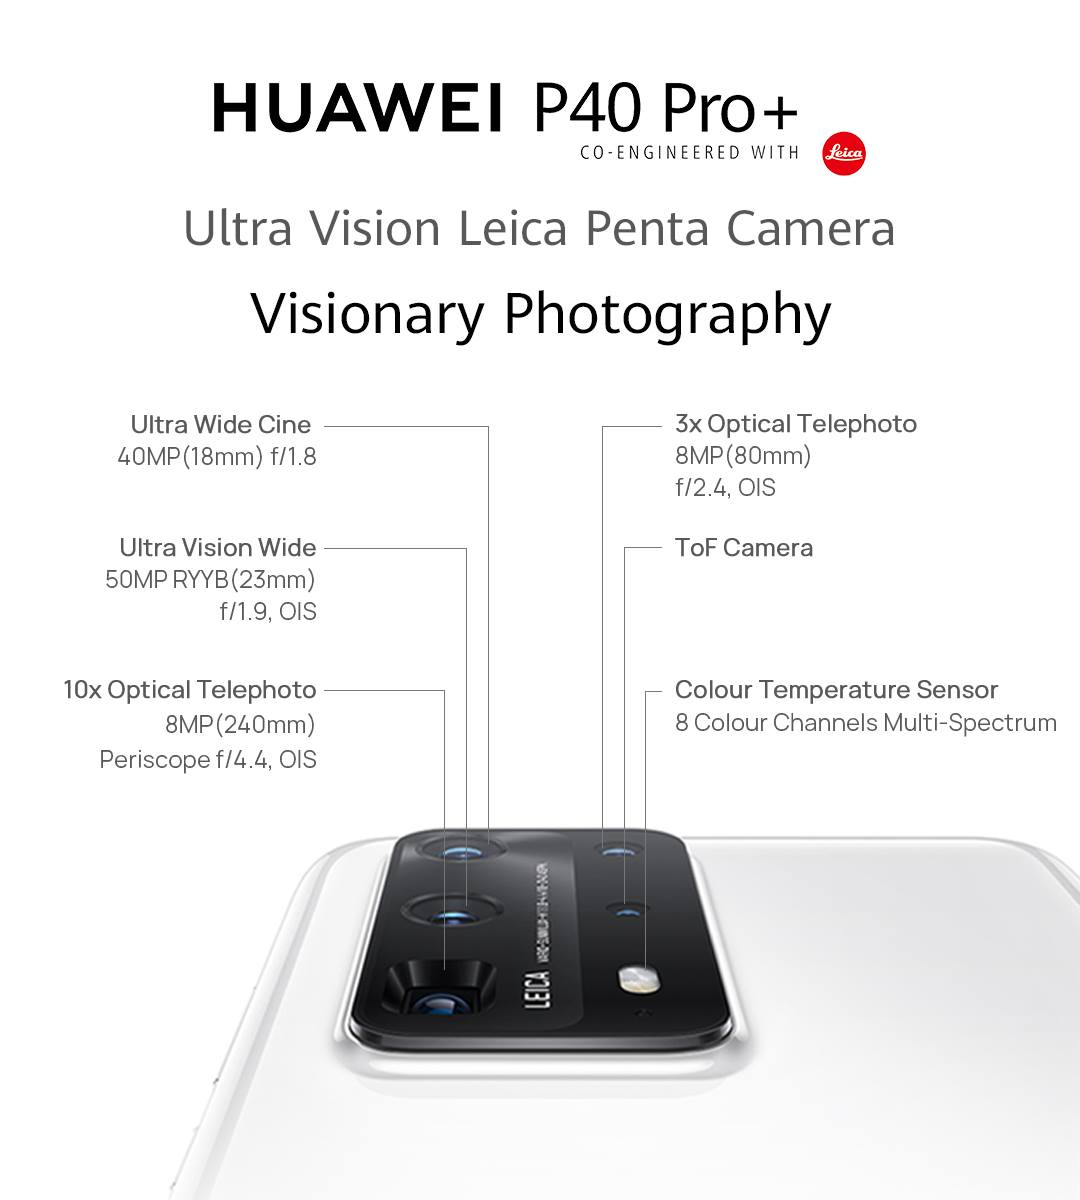 Our #HUAWEIP40 Pro+ will be available soon!